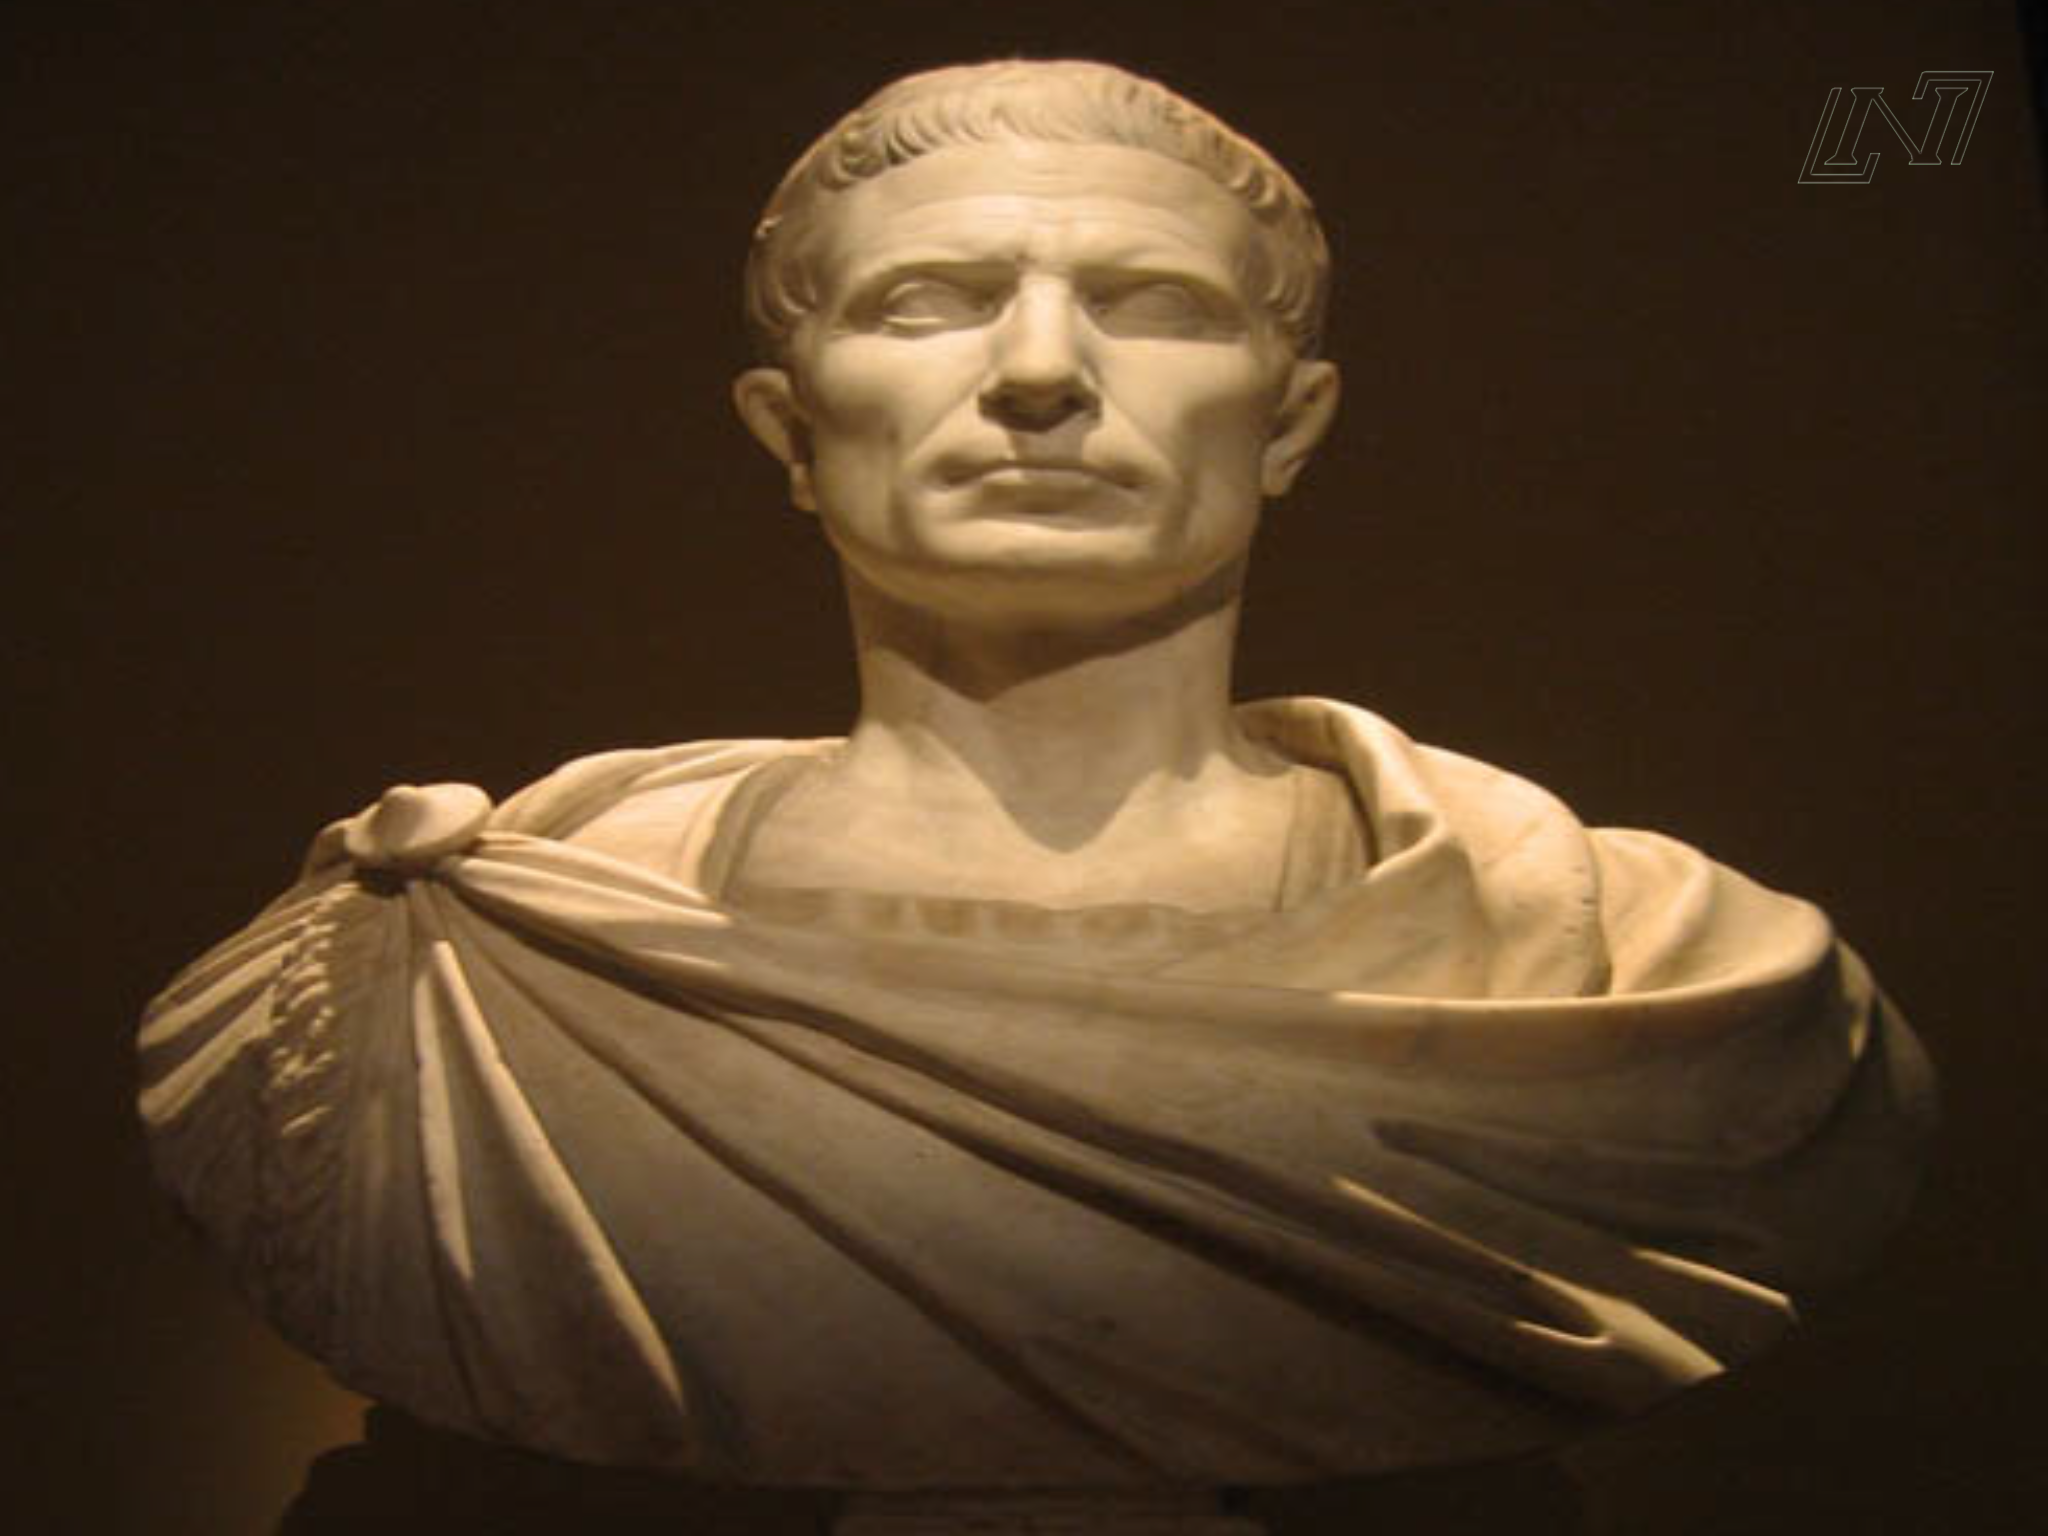 gaius julius caesar Gaius julius caesar (13 july 100 bc – 15 march 44 bc) was a roman general, statesman and consul of the roman republic he played a critical role in the events that led to the demise of the republic and the rise of the roman empire.